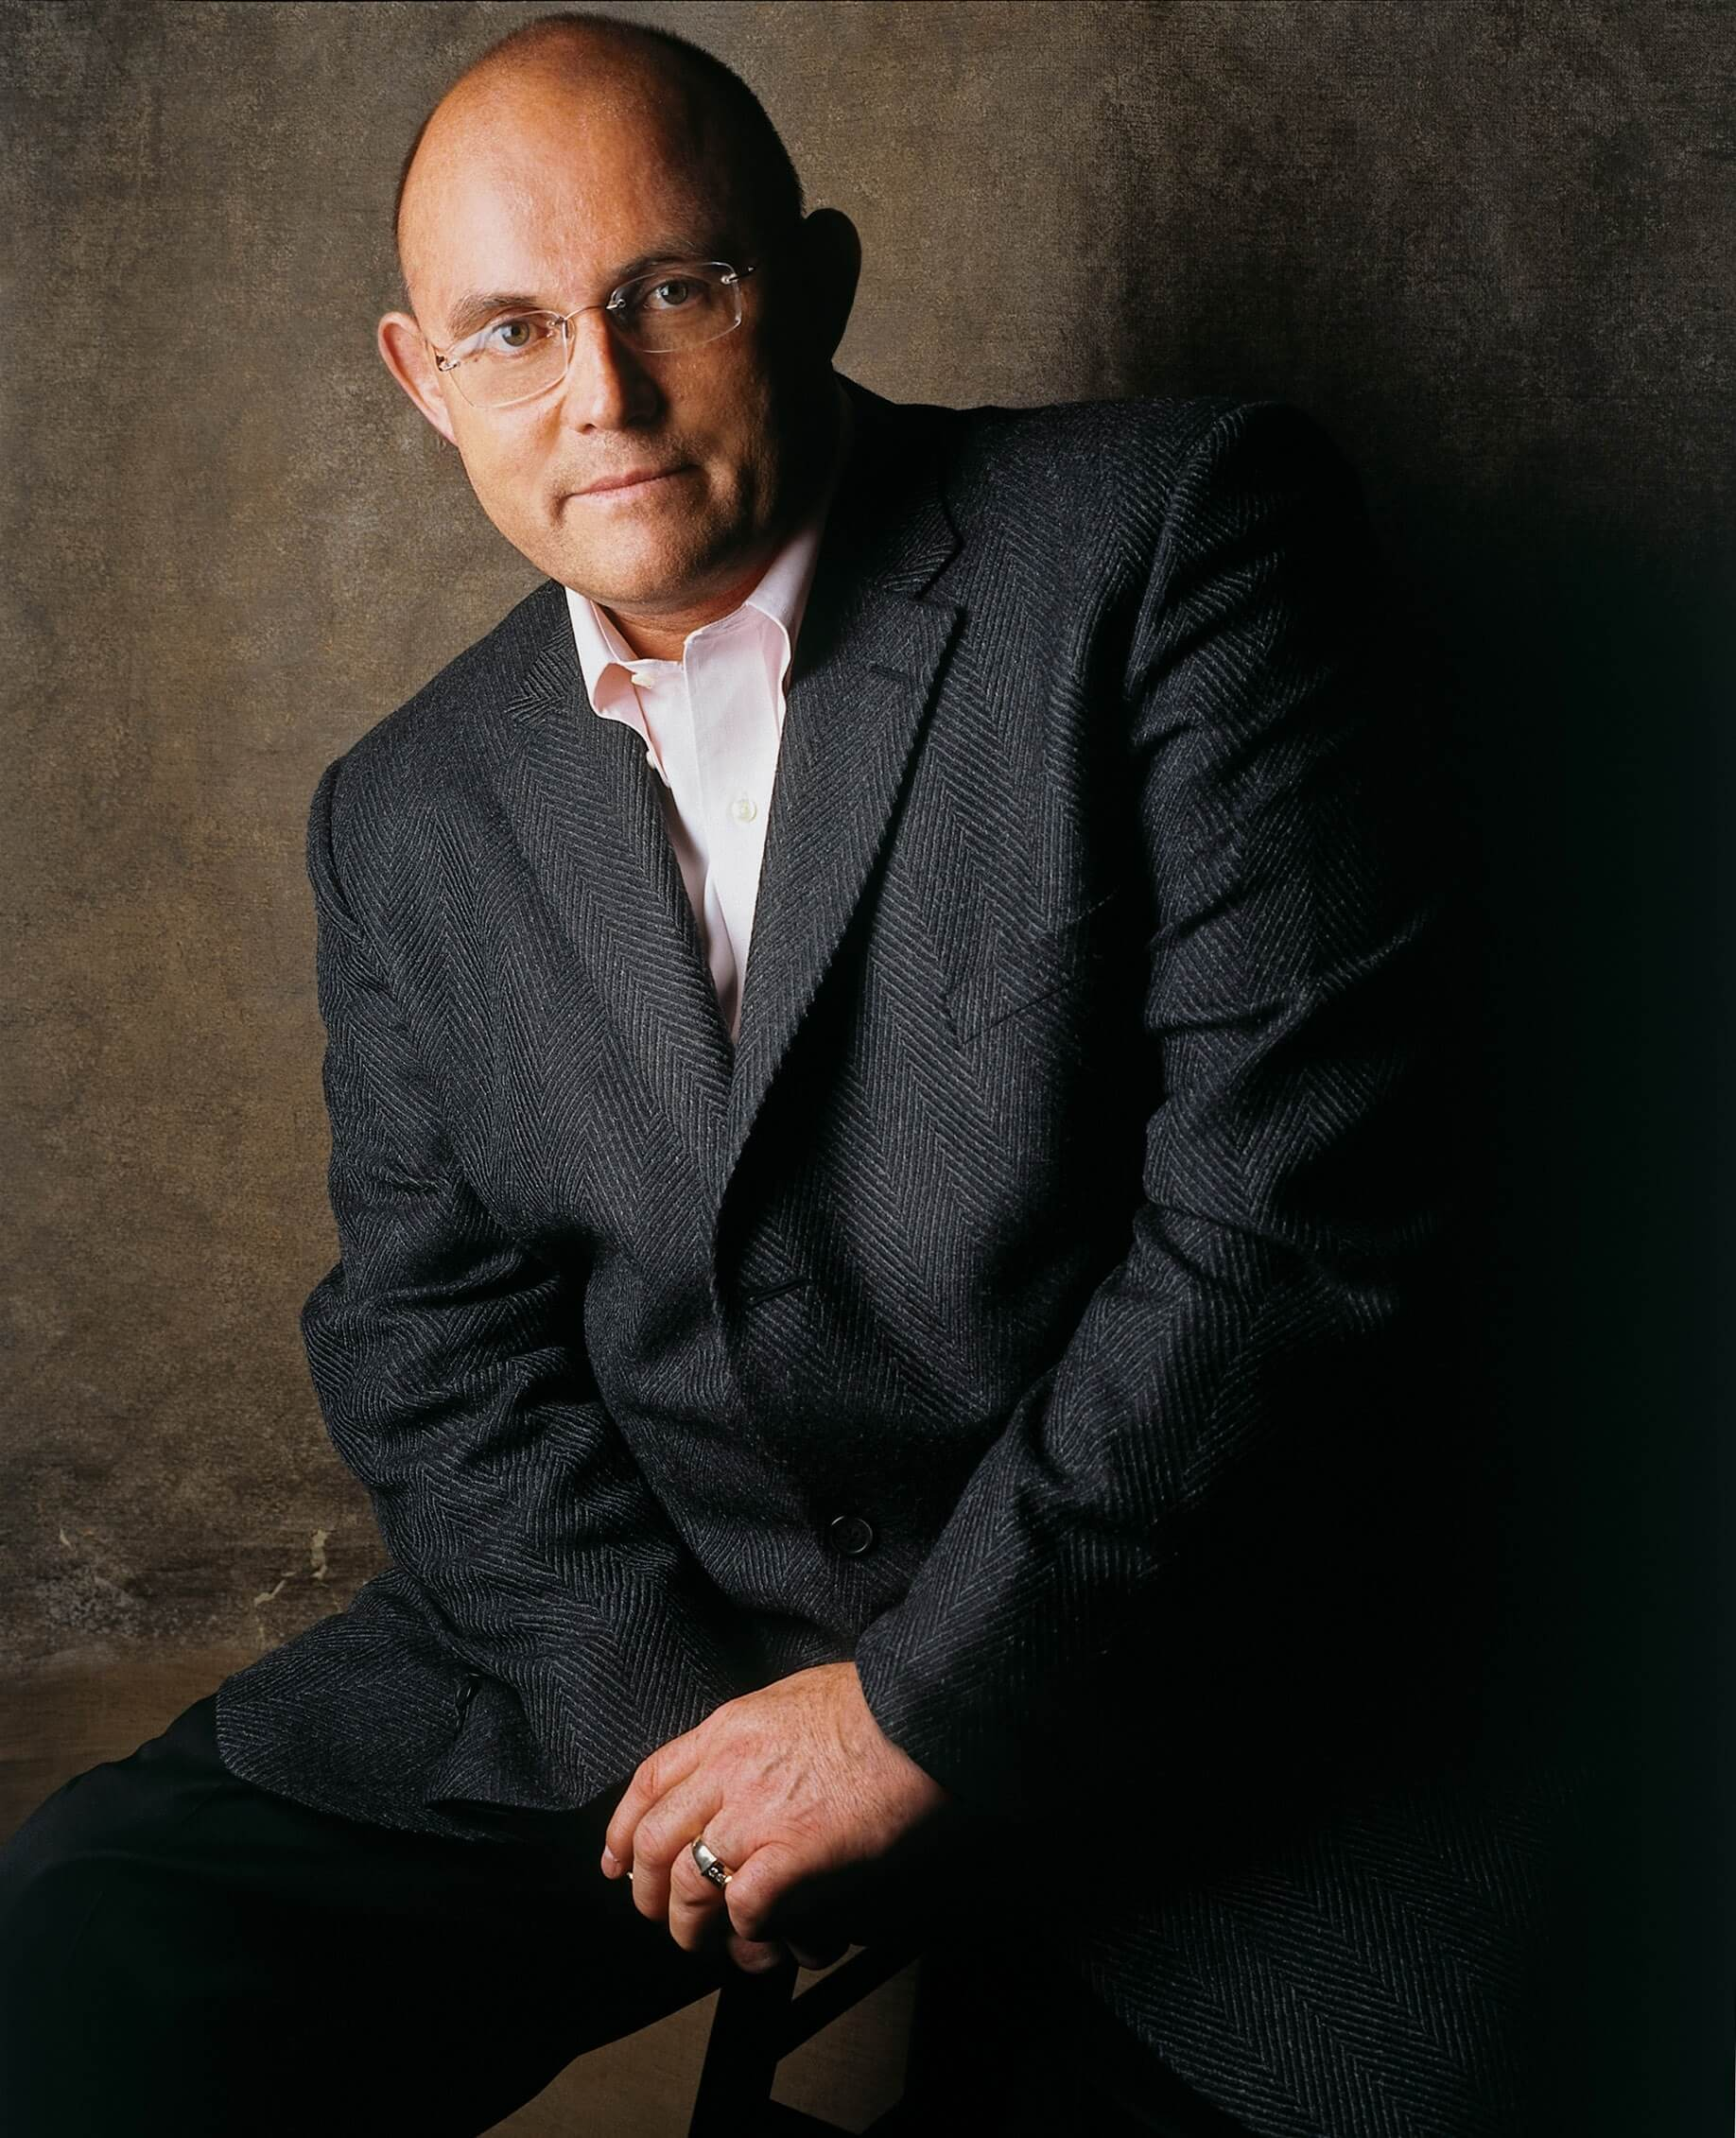 Ronan Tynan, Executive Speakers Bureau